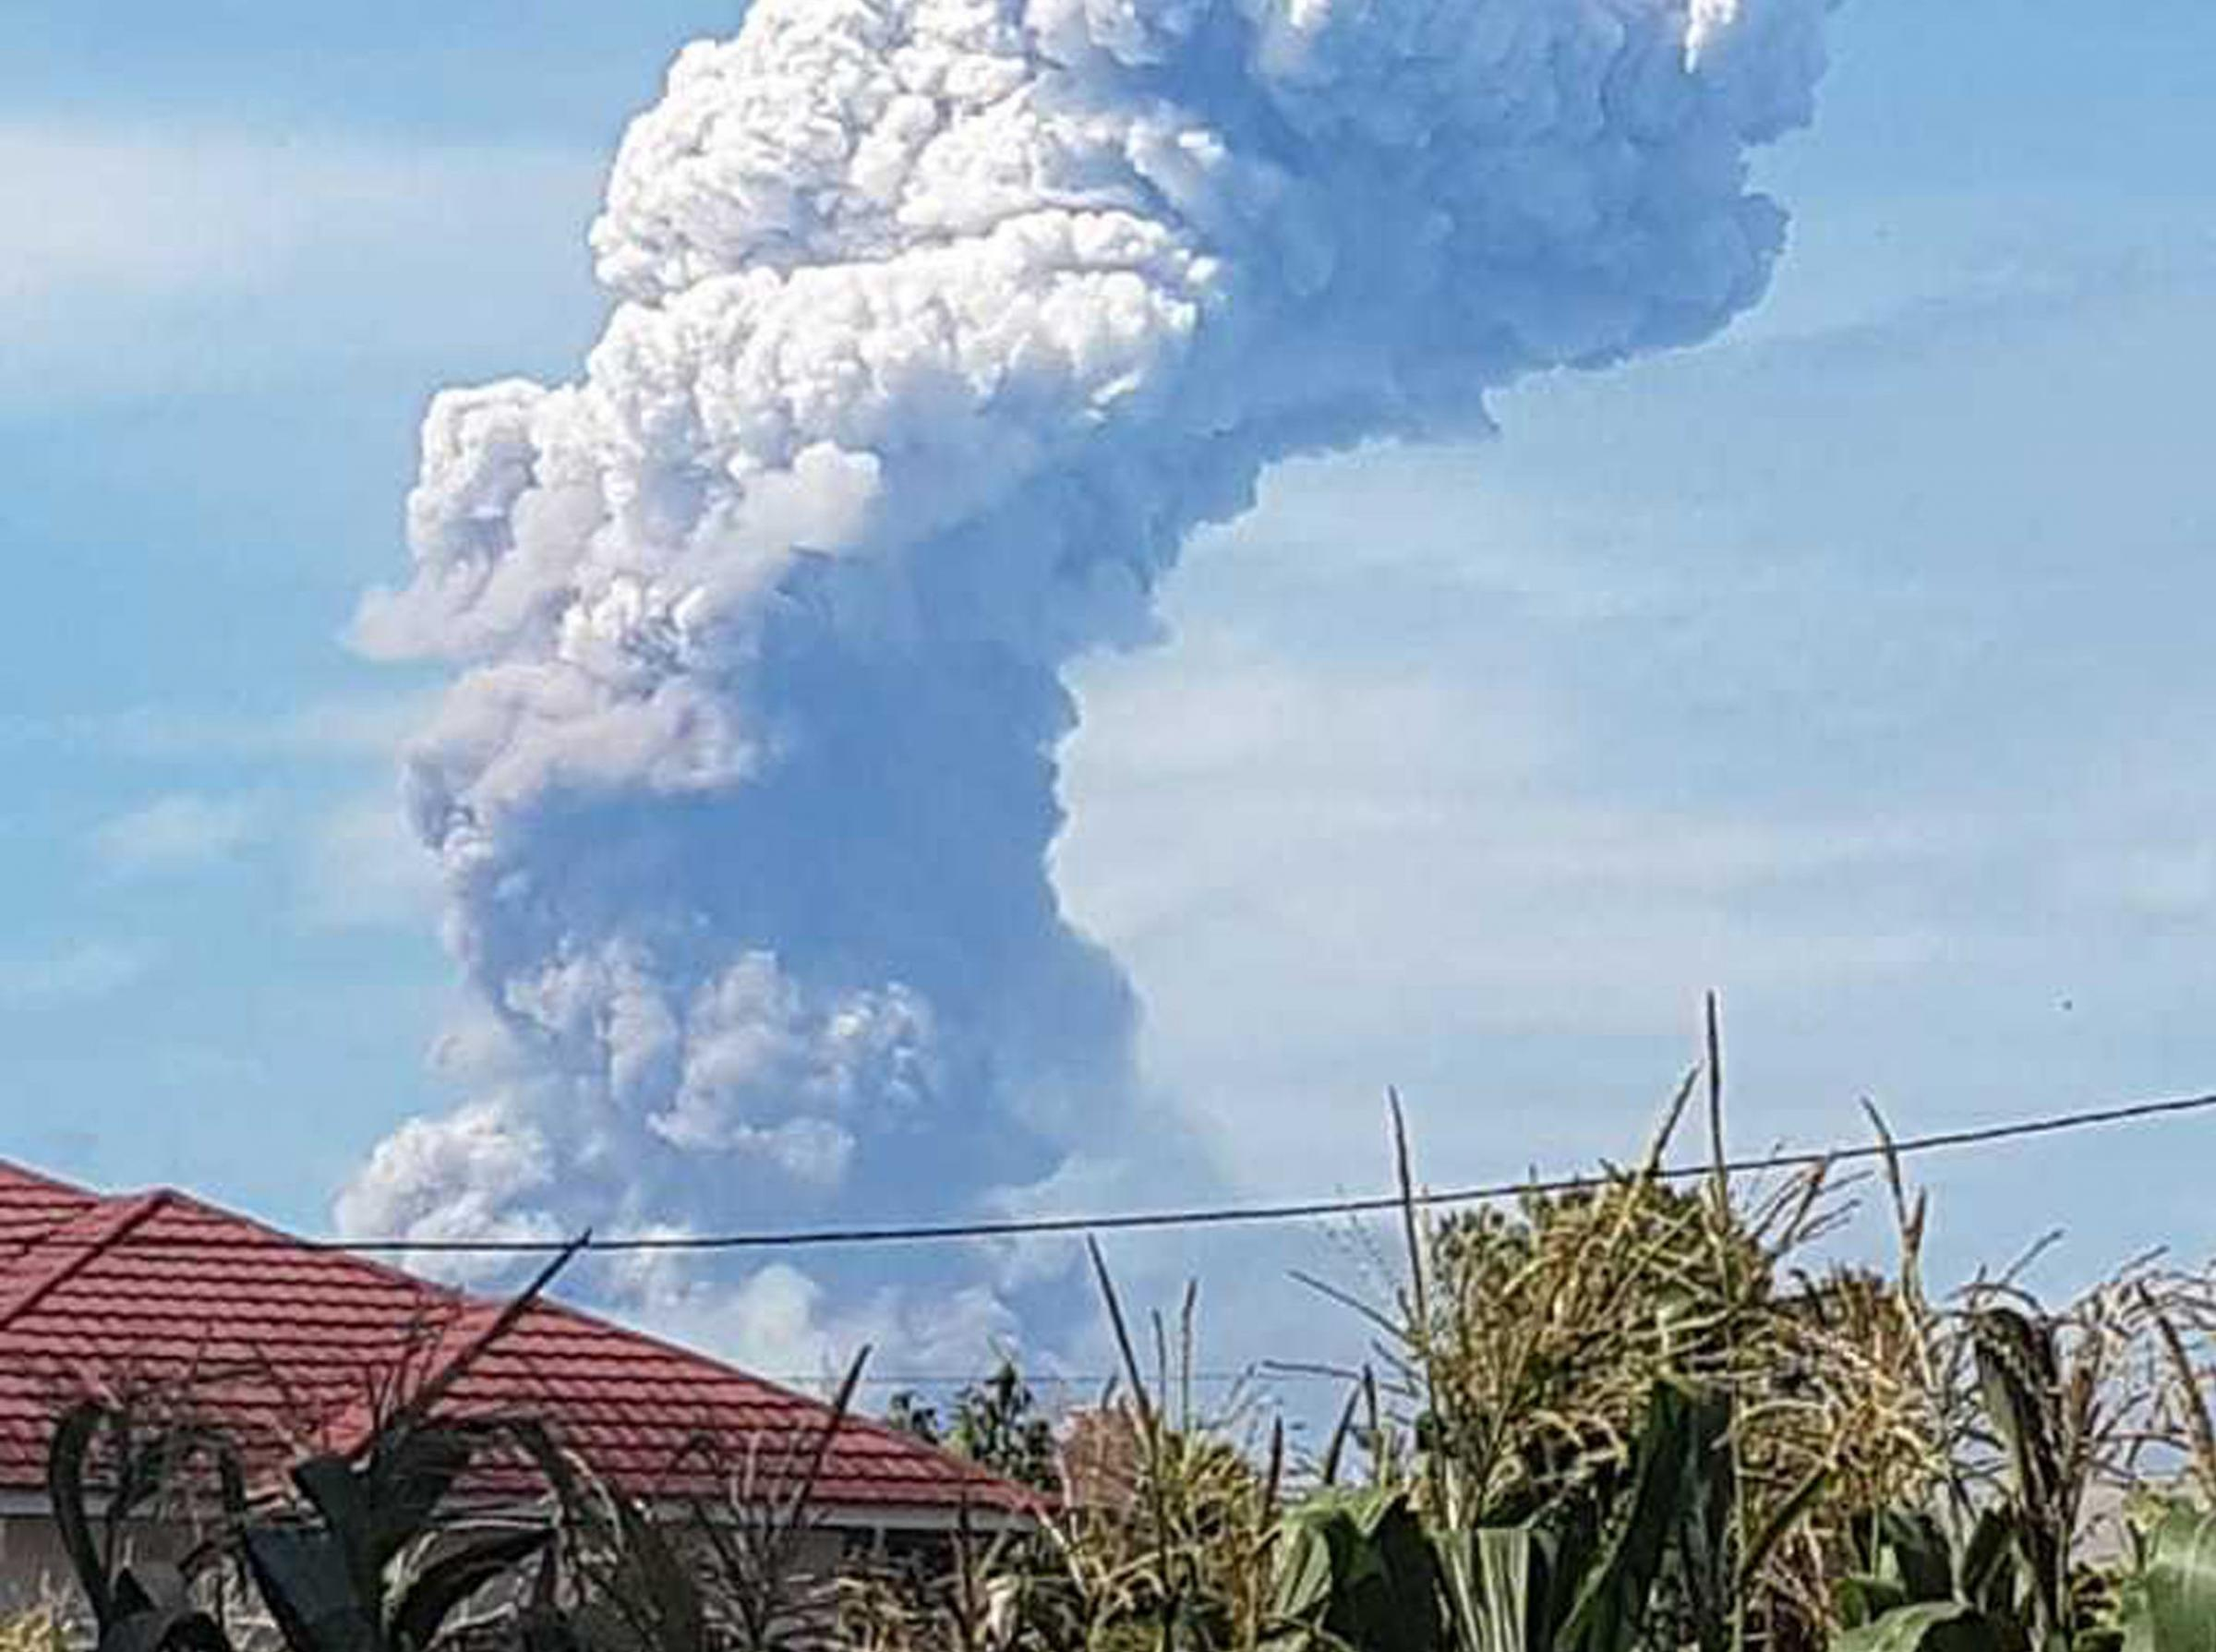 The volcanic ash shot almost 20,000 ft into the air following the eruption